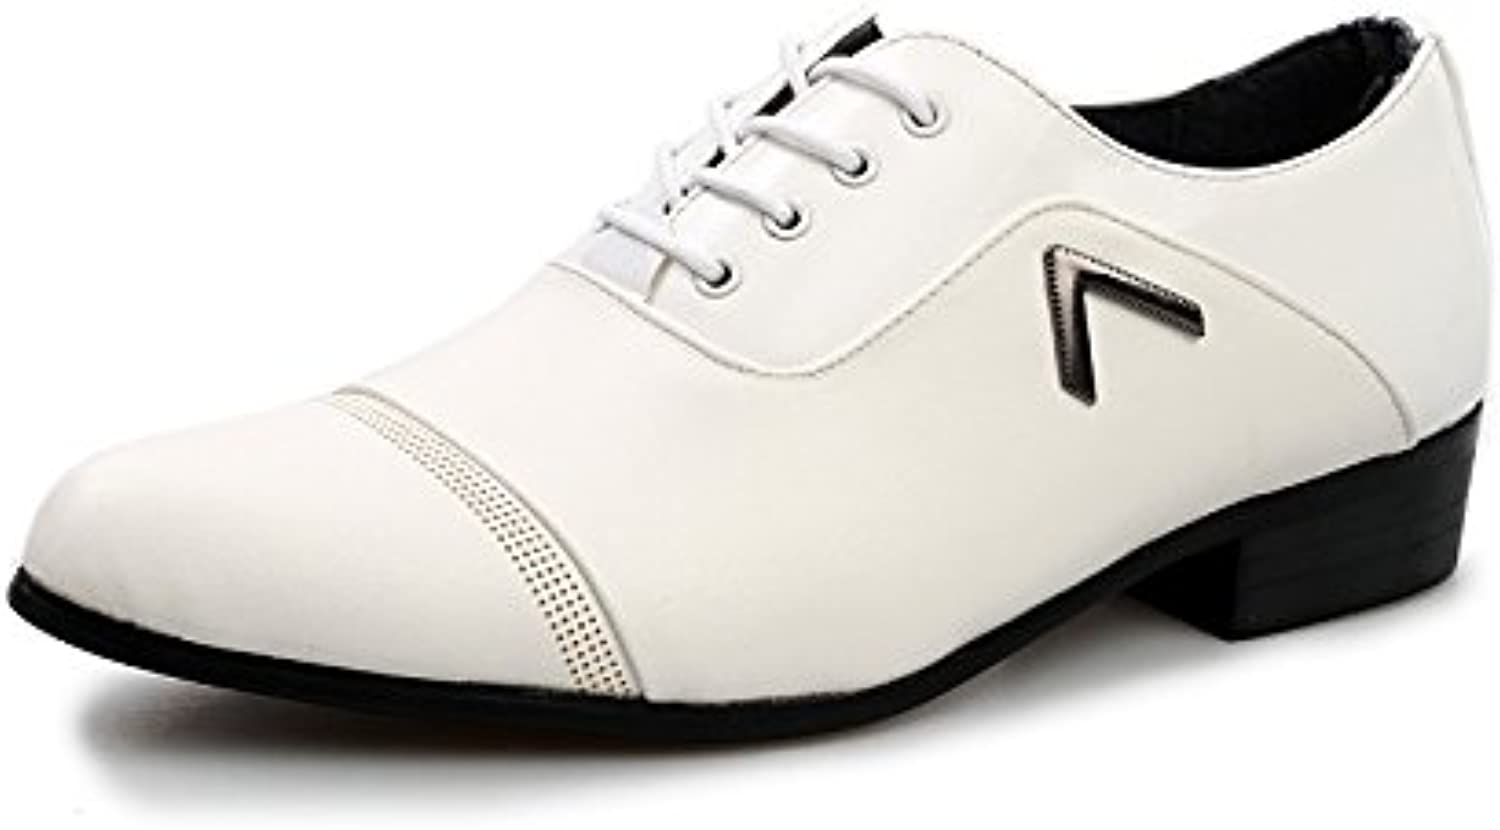 LOVDRAM Men'S shoes Casual Business Pointed shoes Men'S Dress shoes Casual Wild Black And White shoes